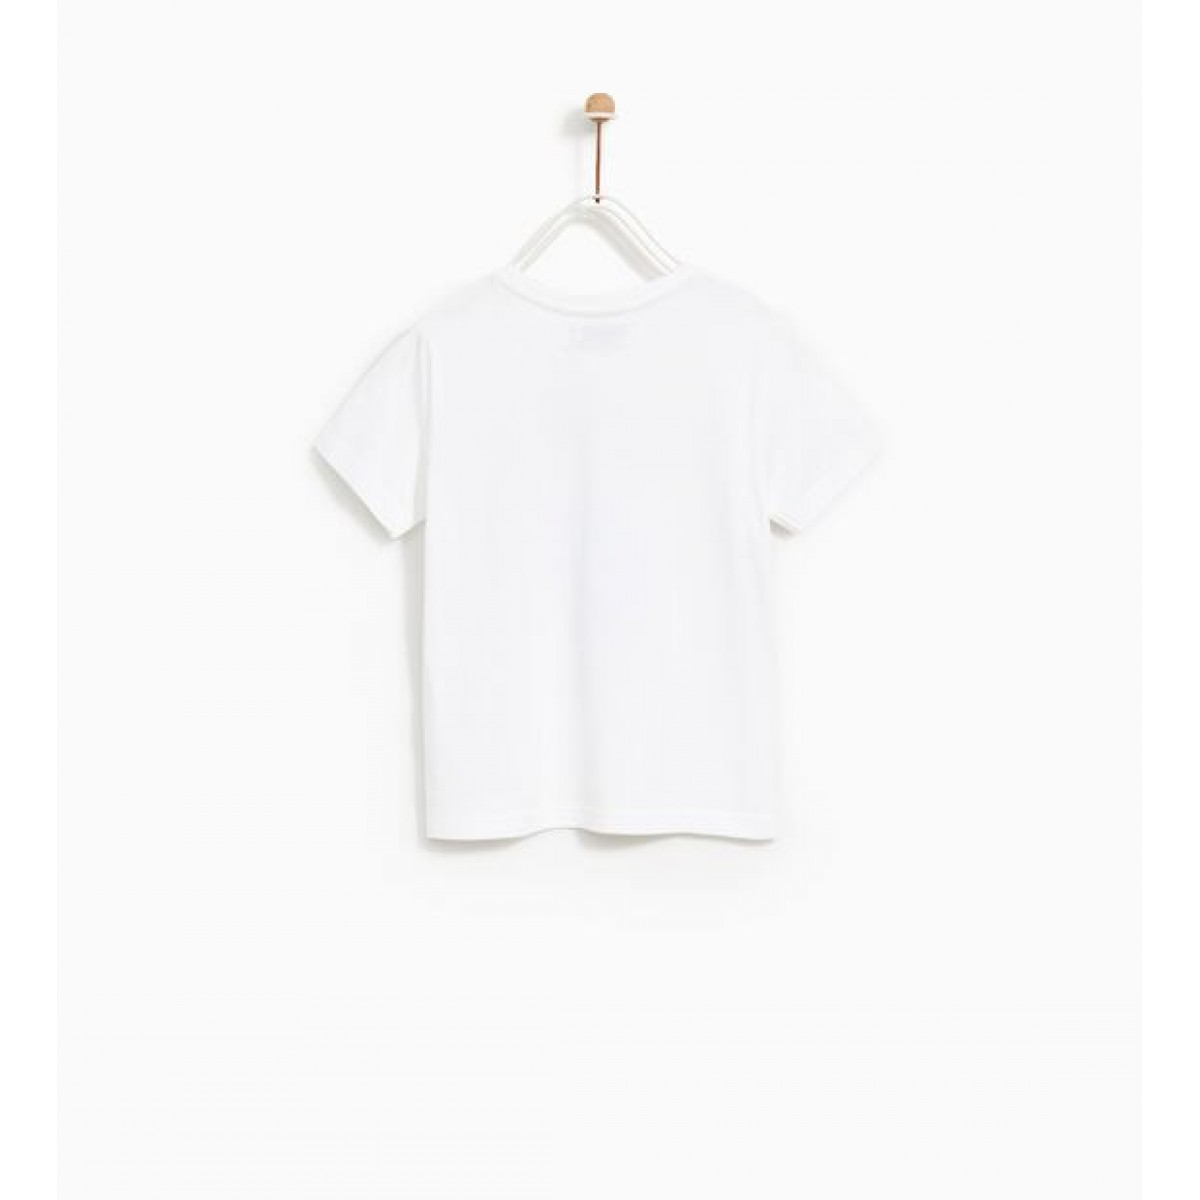 Zara Player 4 T-Shirt